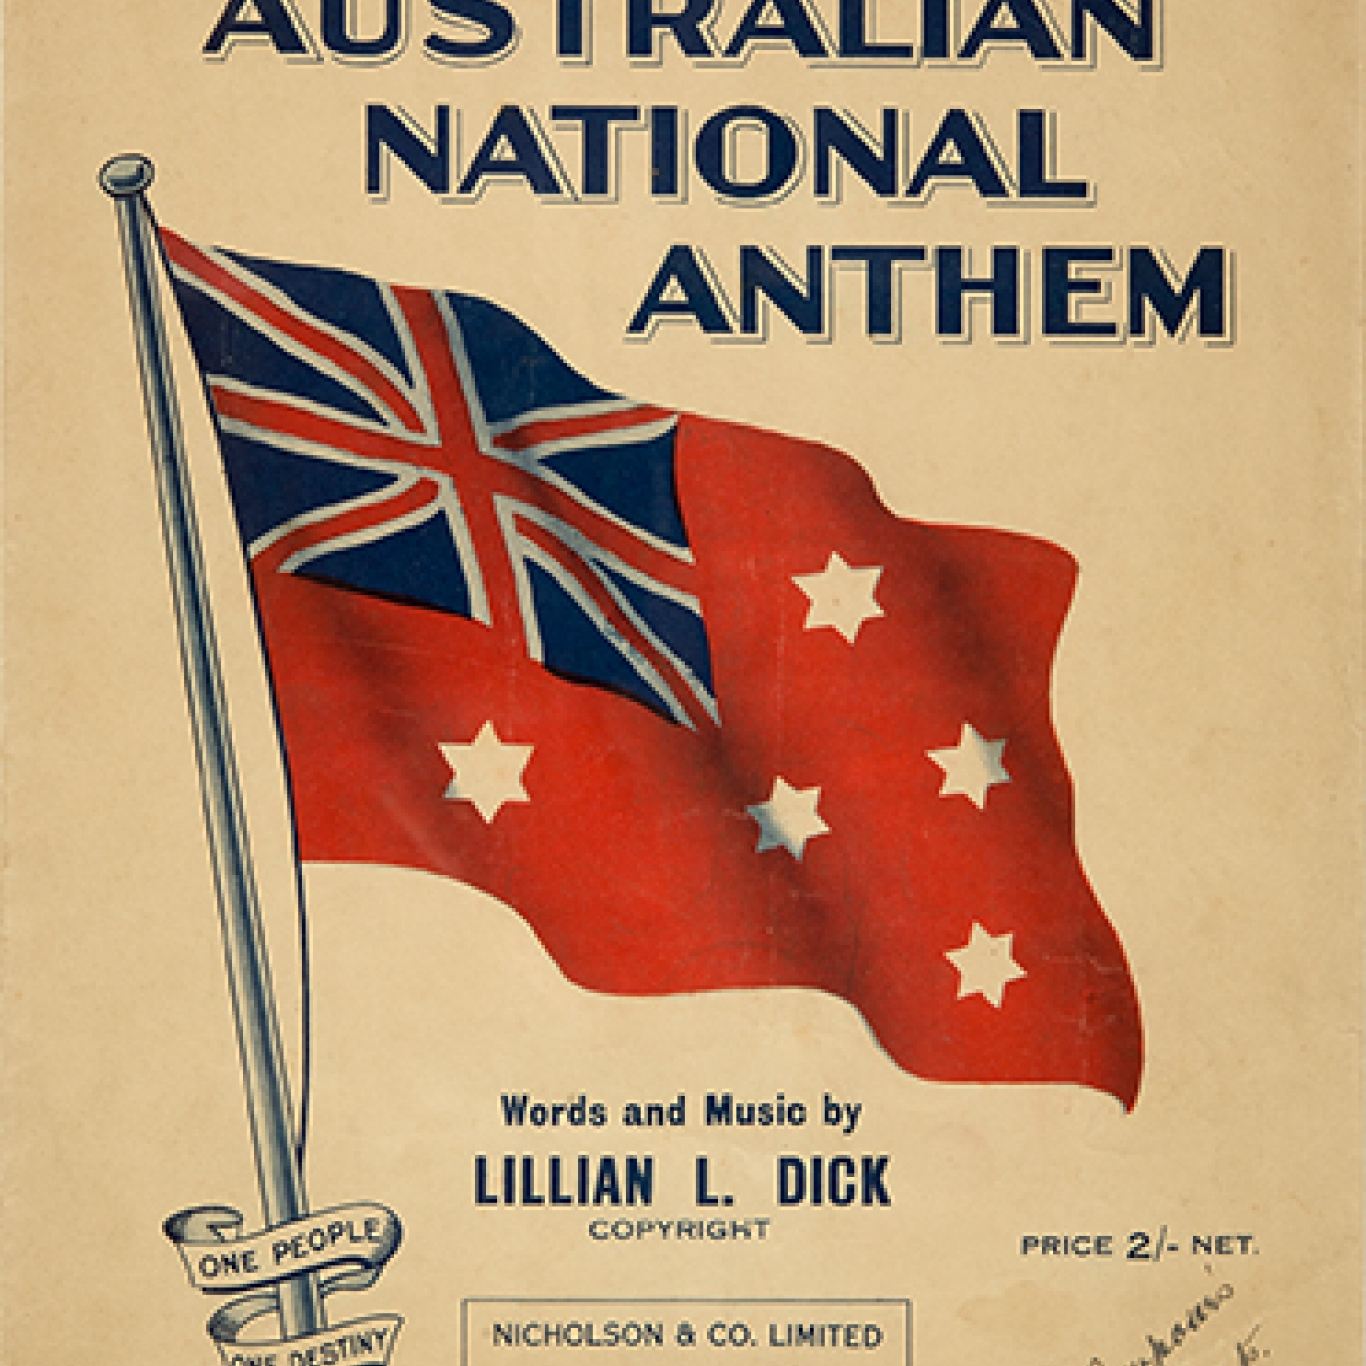 The red ensign version of the Australian flag on cover of sheet music book.